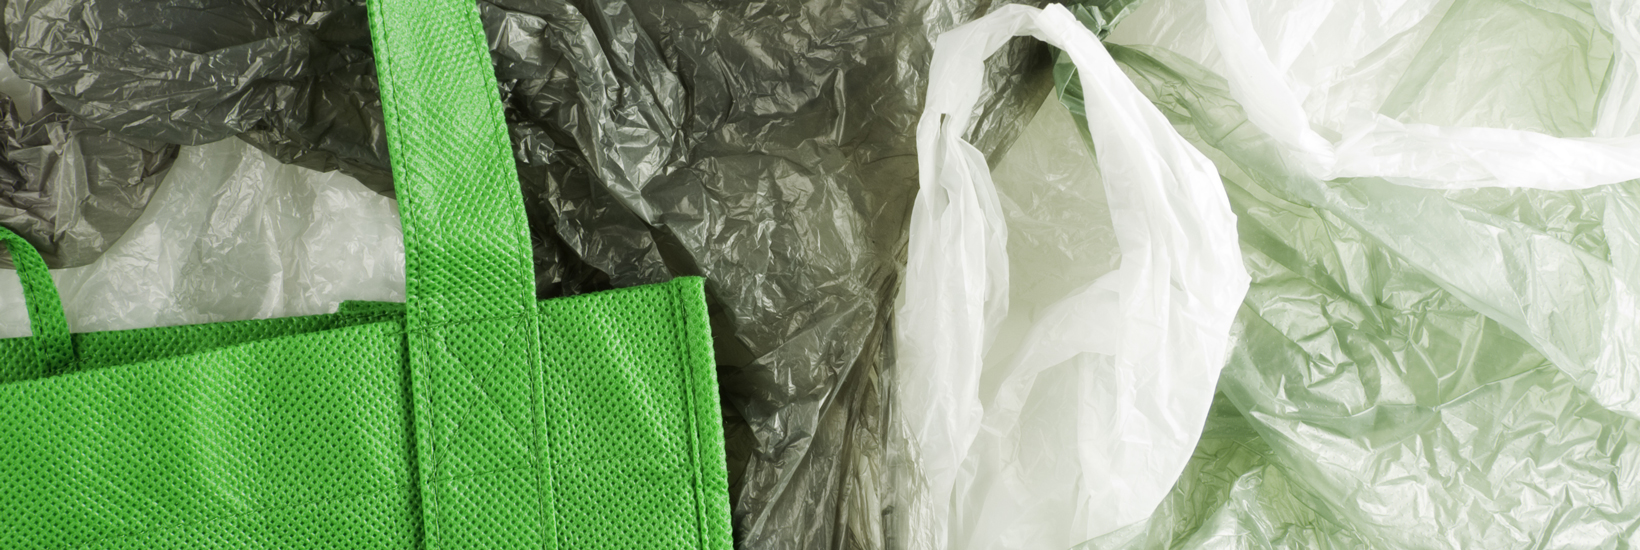 reduse usage of plastic bags Reduce, reuse, recycle learn how reducing, reusing, and recycling can help you, your community, and the environment by saving money, energy reduce and reuse.